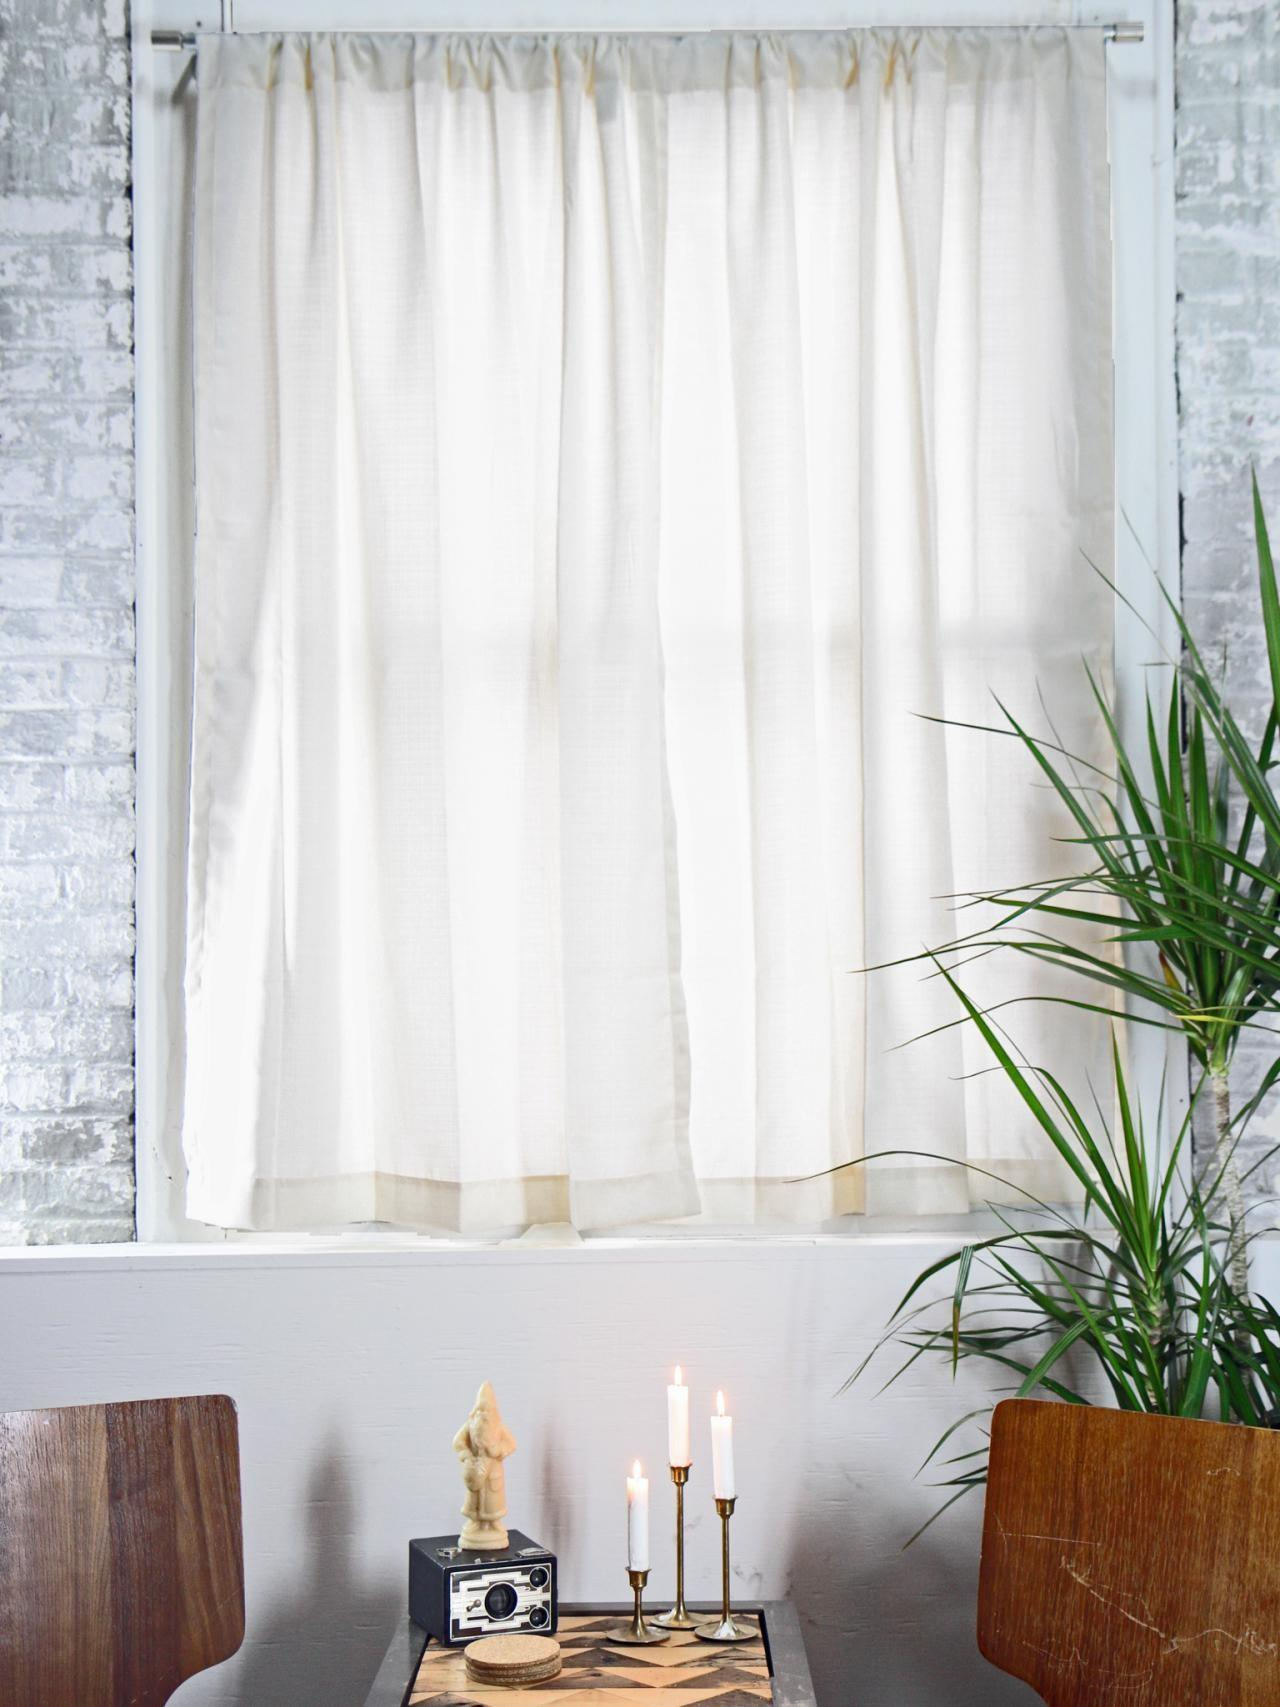 Hang Curtain Rods Tos Diy